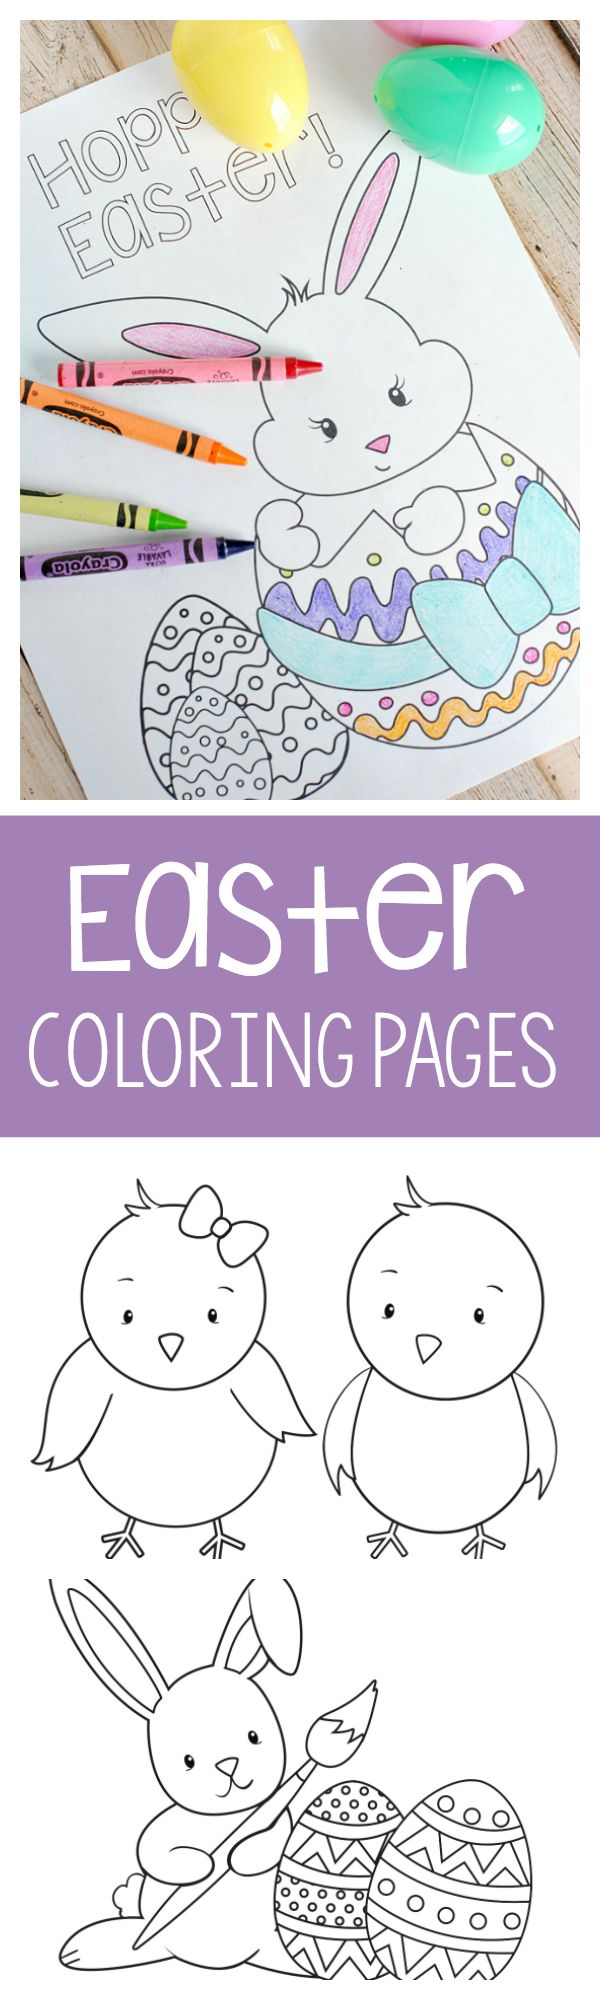 Coloring pages of spring things - Easter Coloring Pages